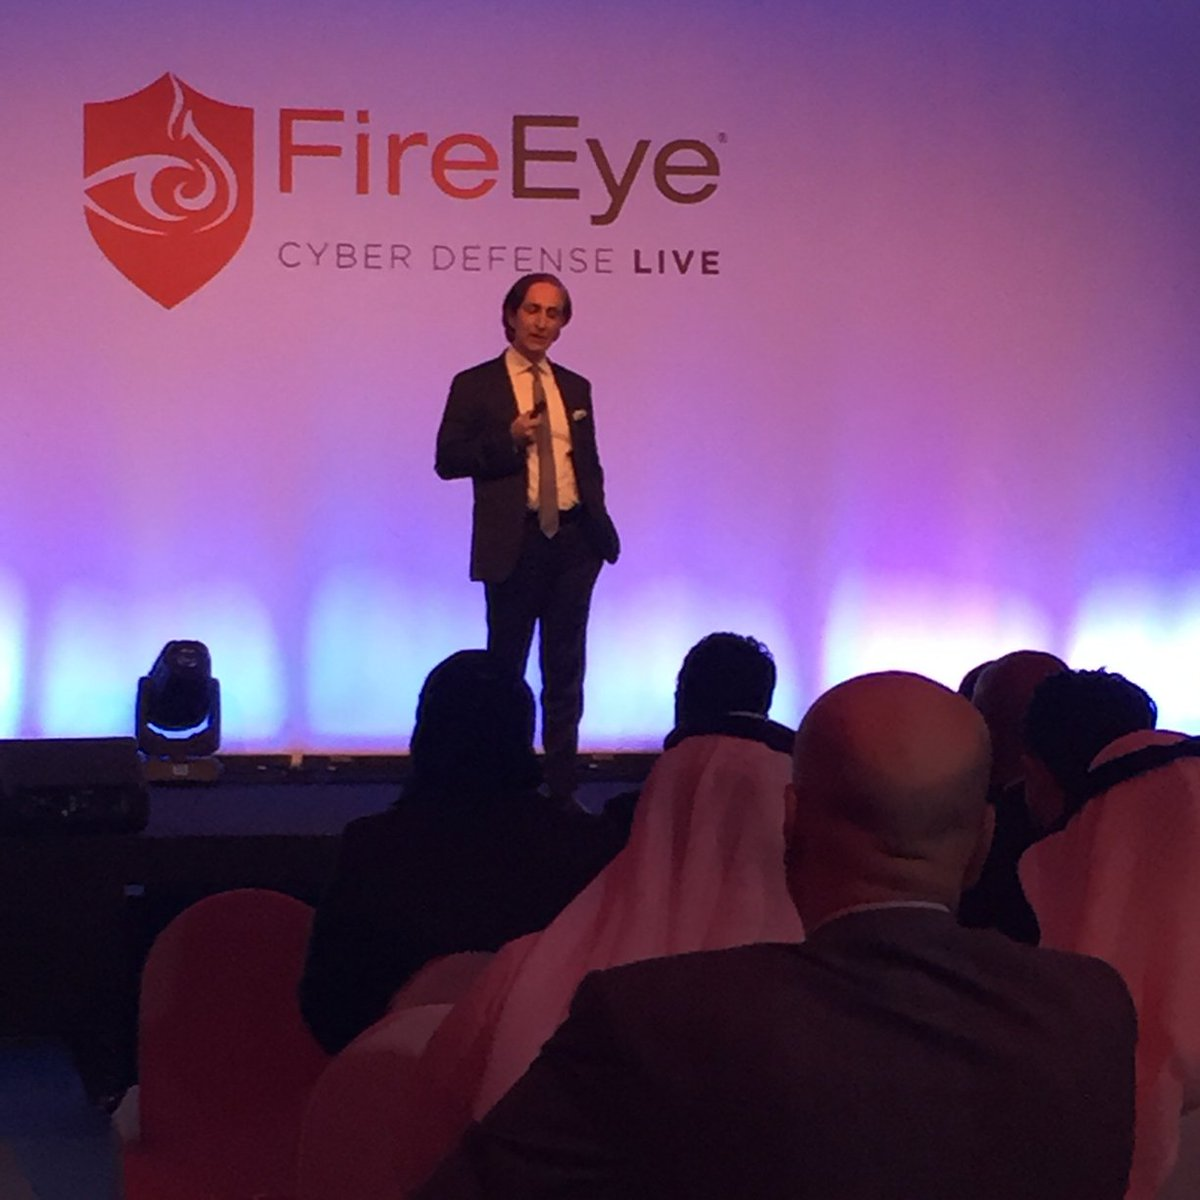 Fireeye Images - Reverse Search